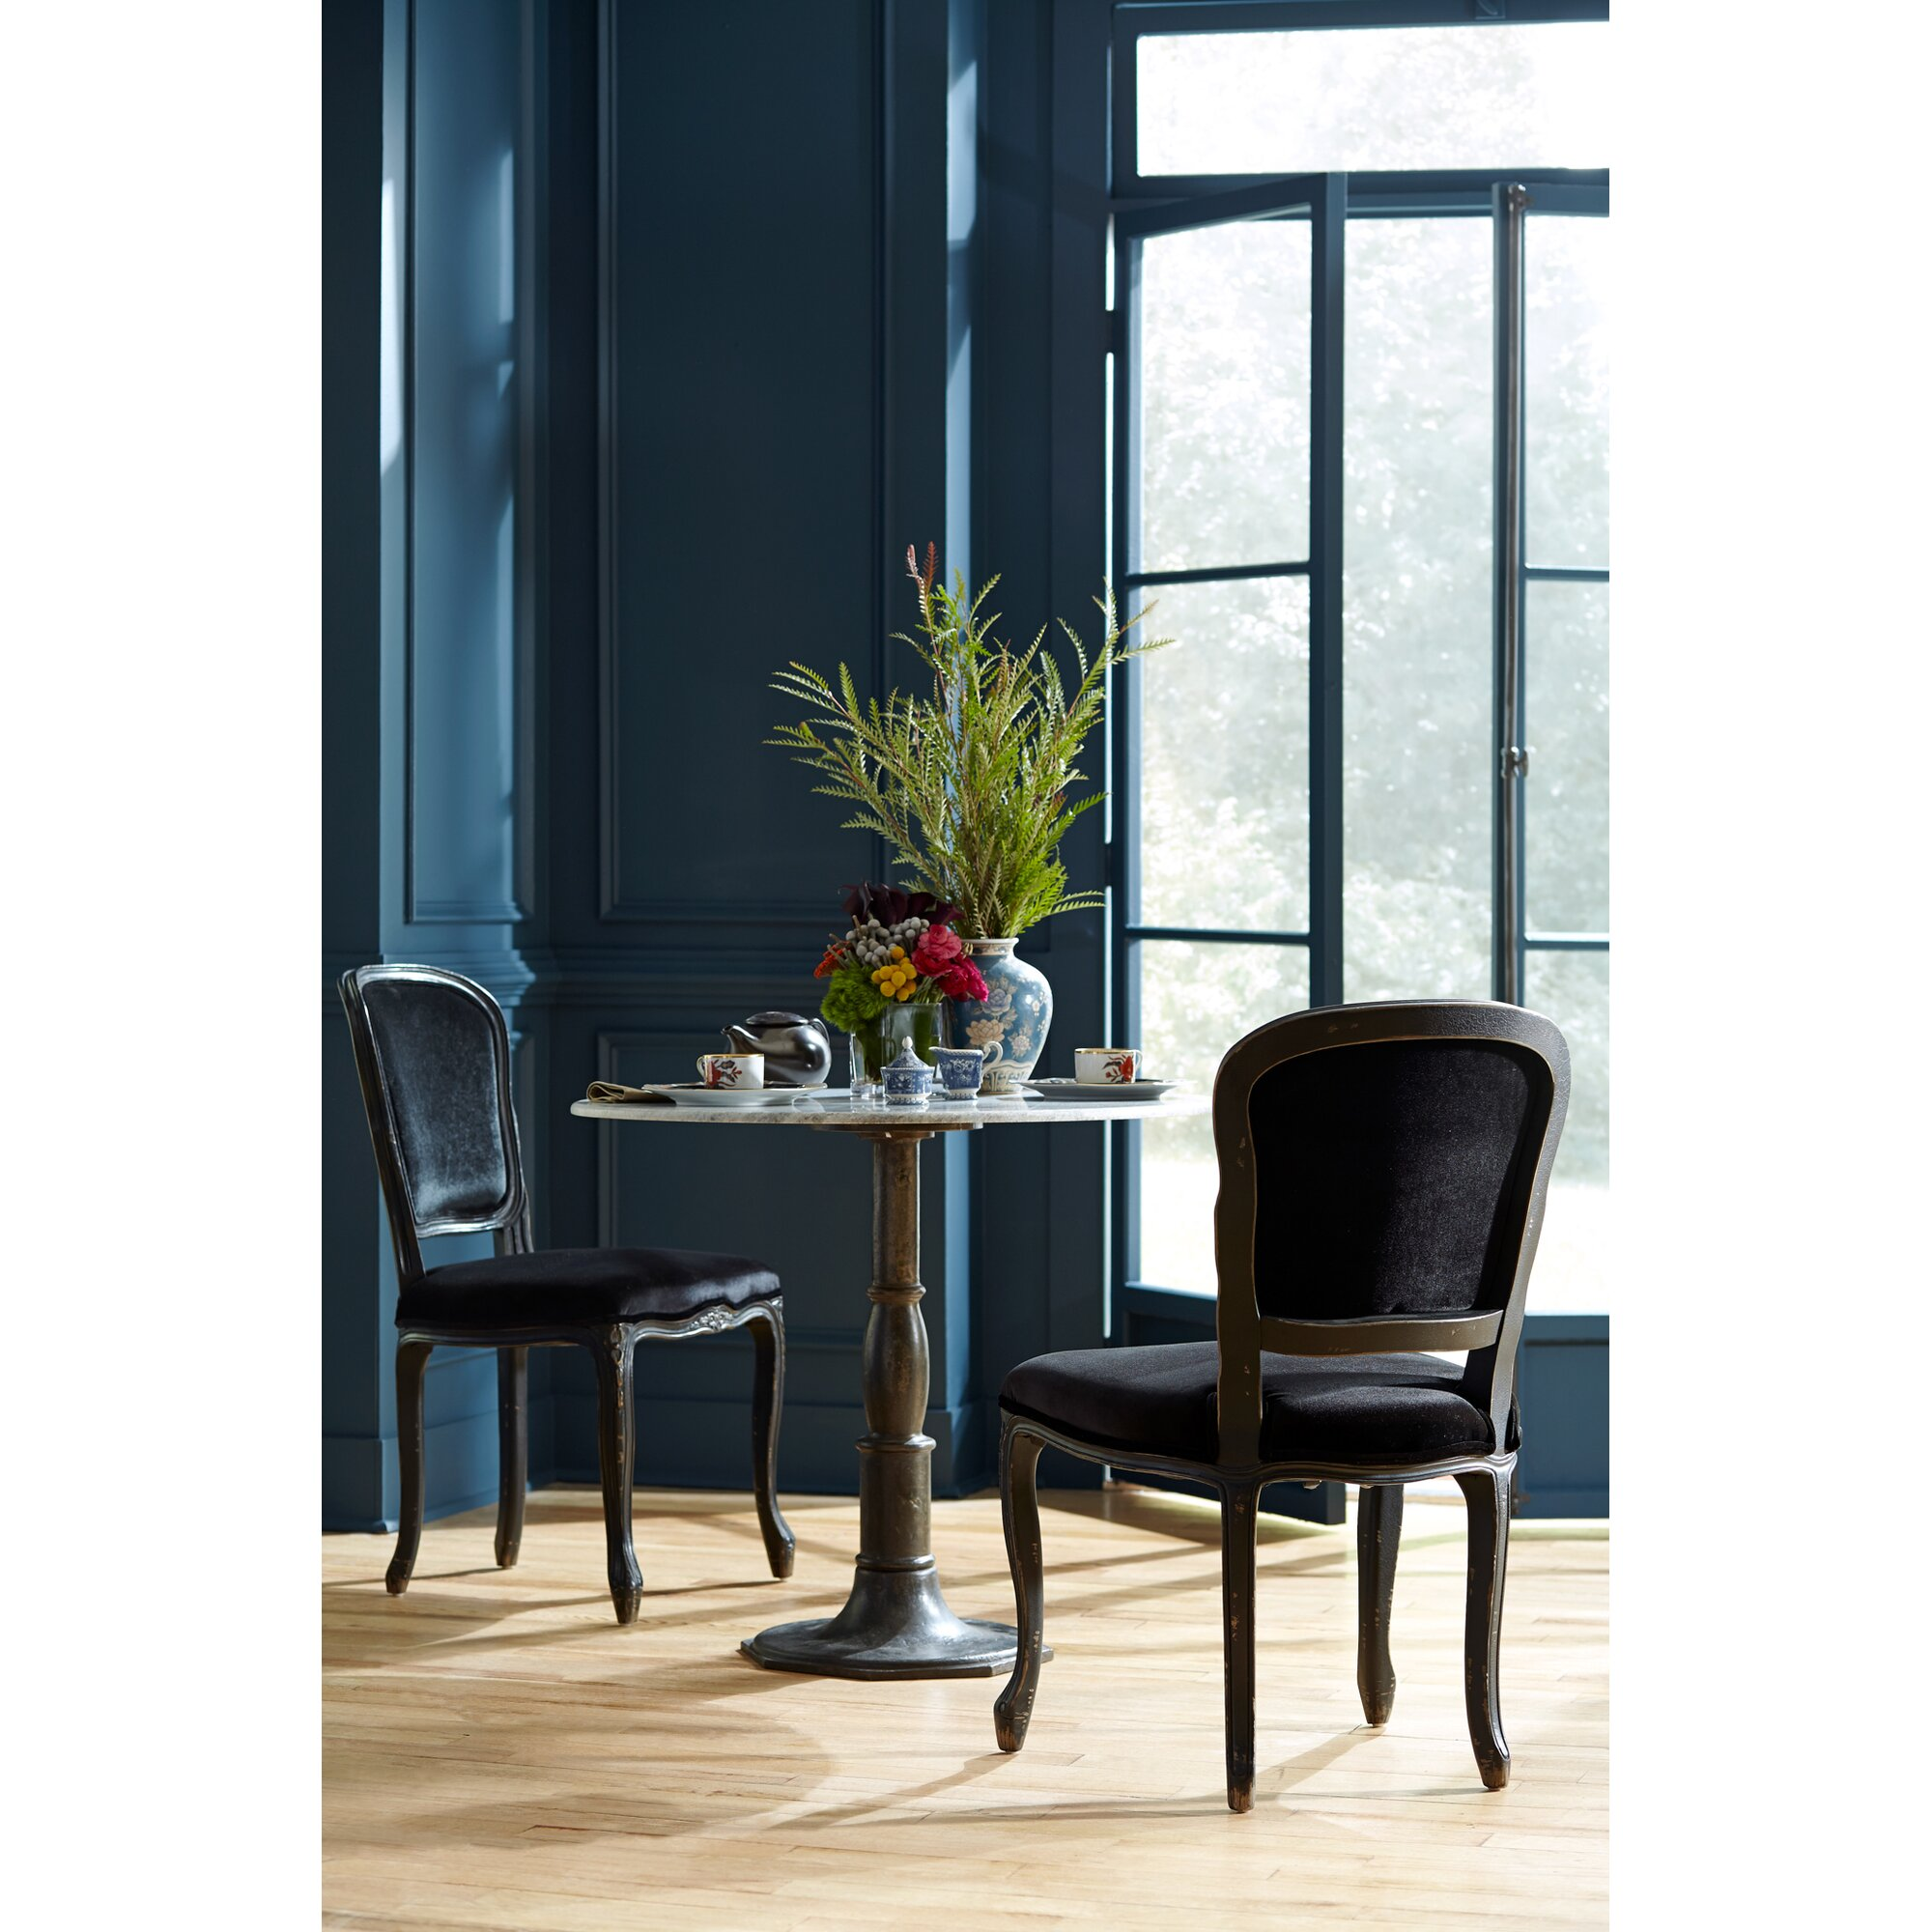 dCOR design Lucy Bistro Dining Table Reviews Wayfair